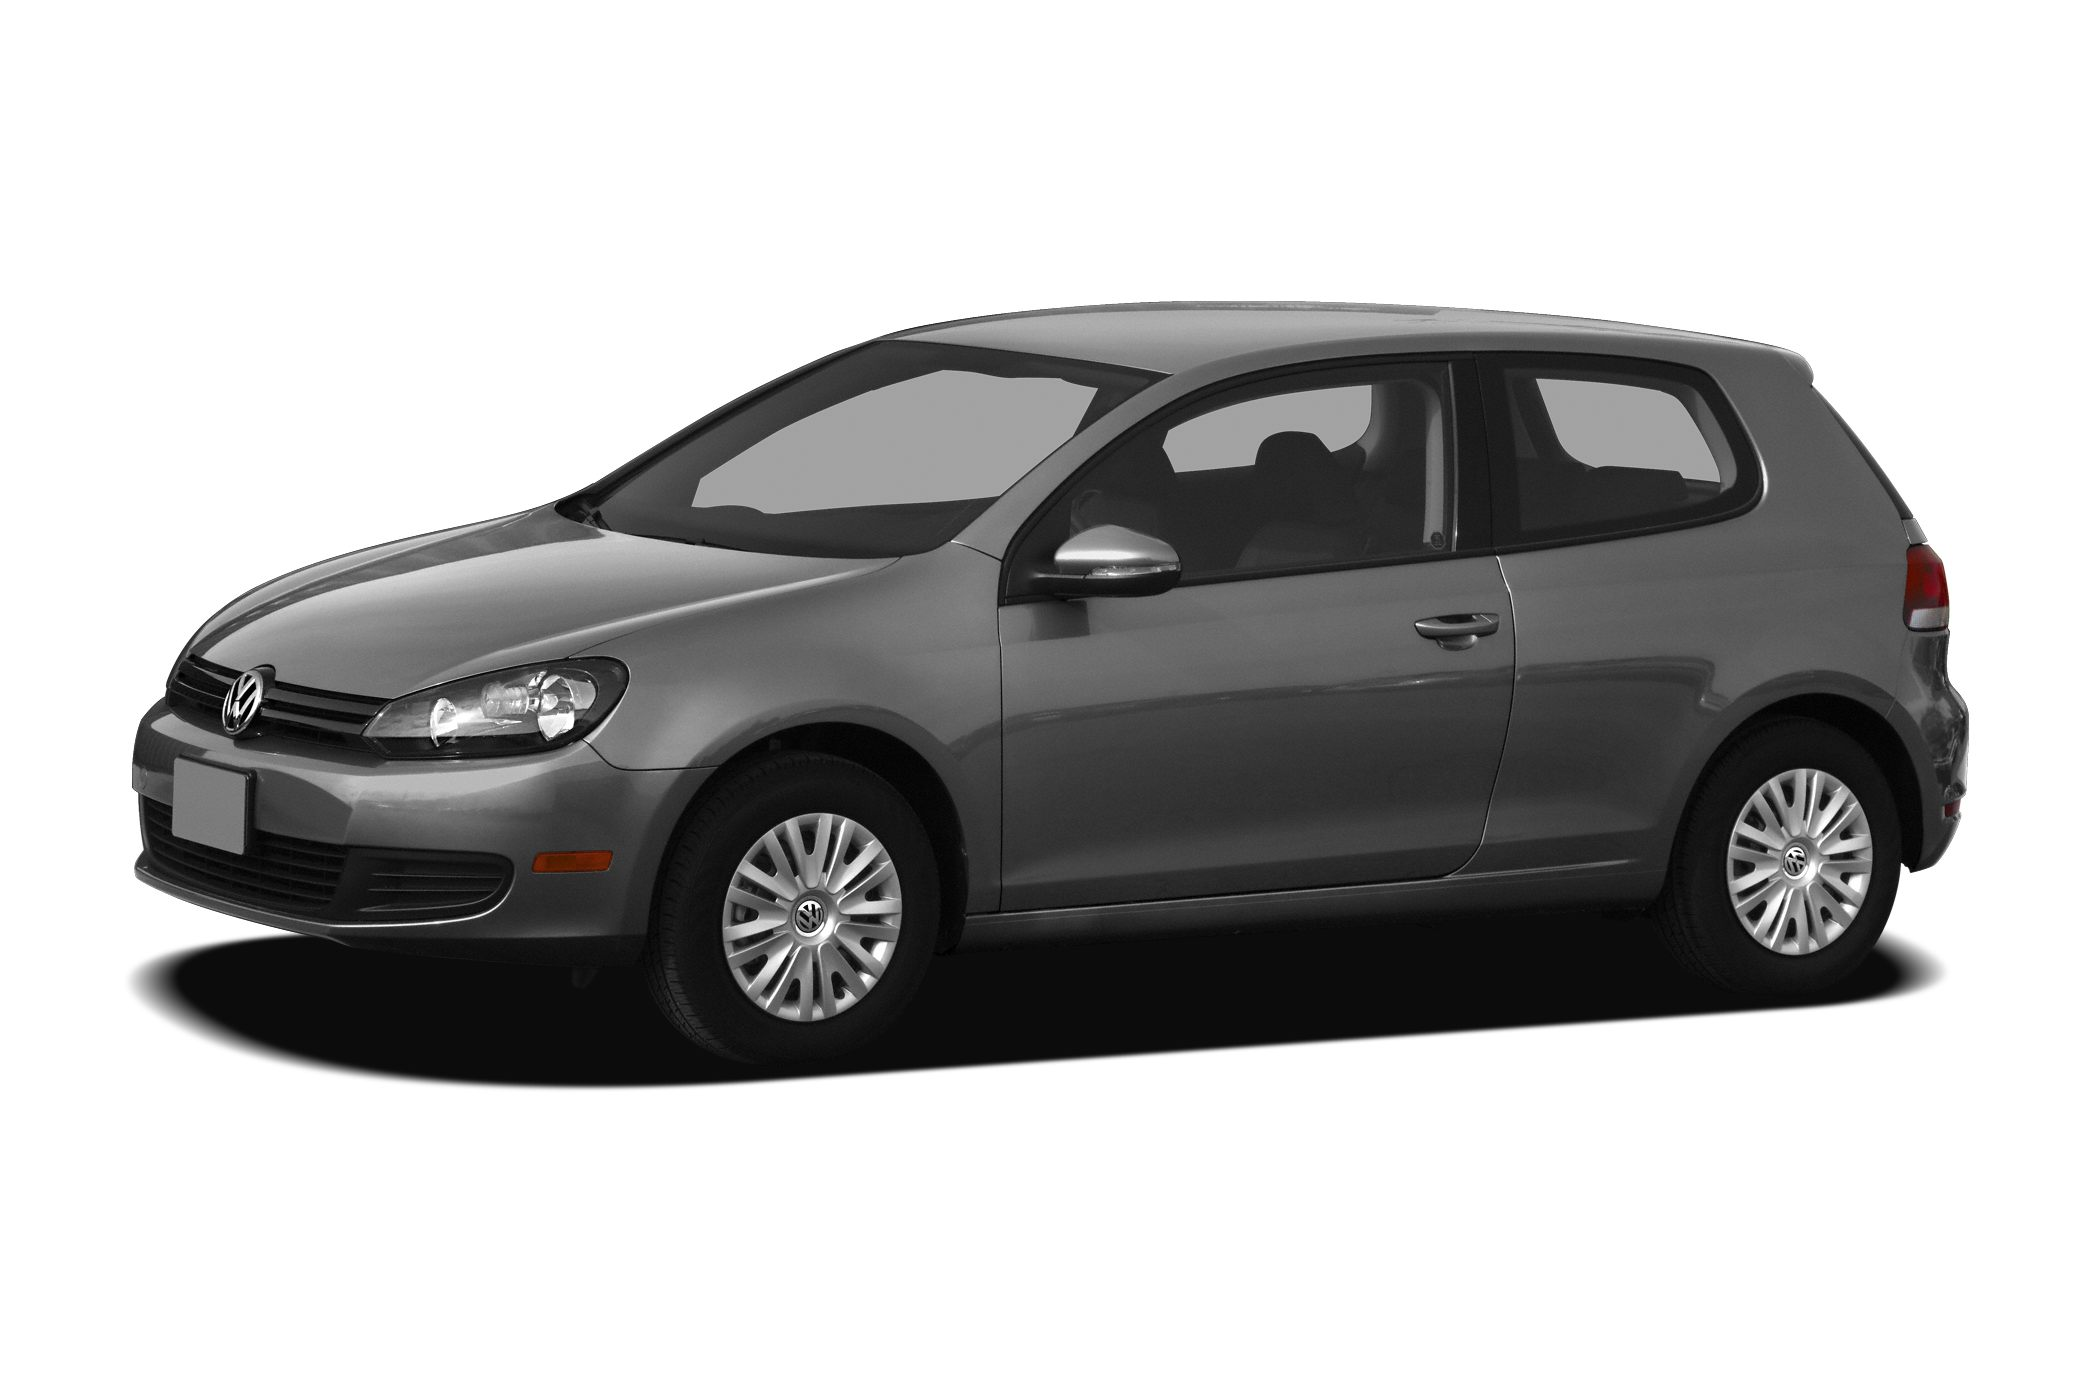 2011 Volkswagen Golf TDI Hatchback for sale in Greeley for $18,000 with 23,271 miles.